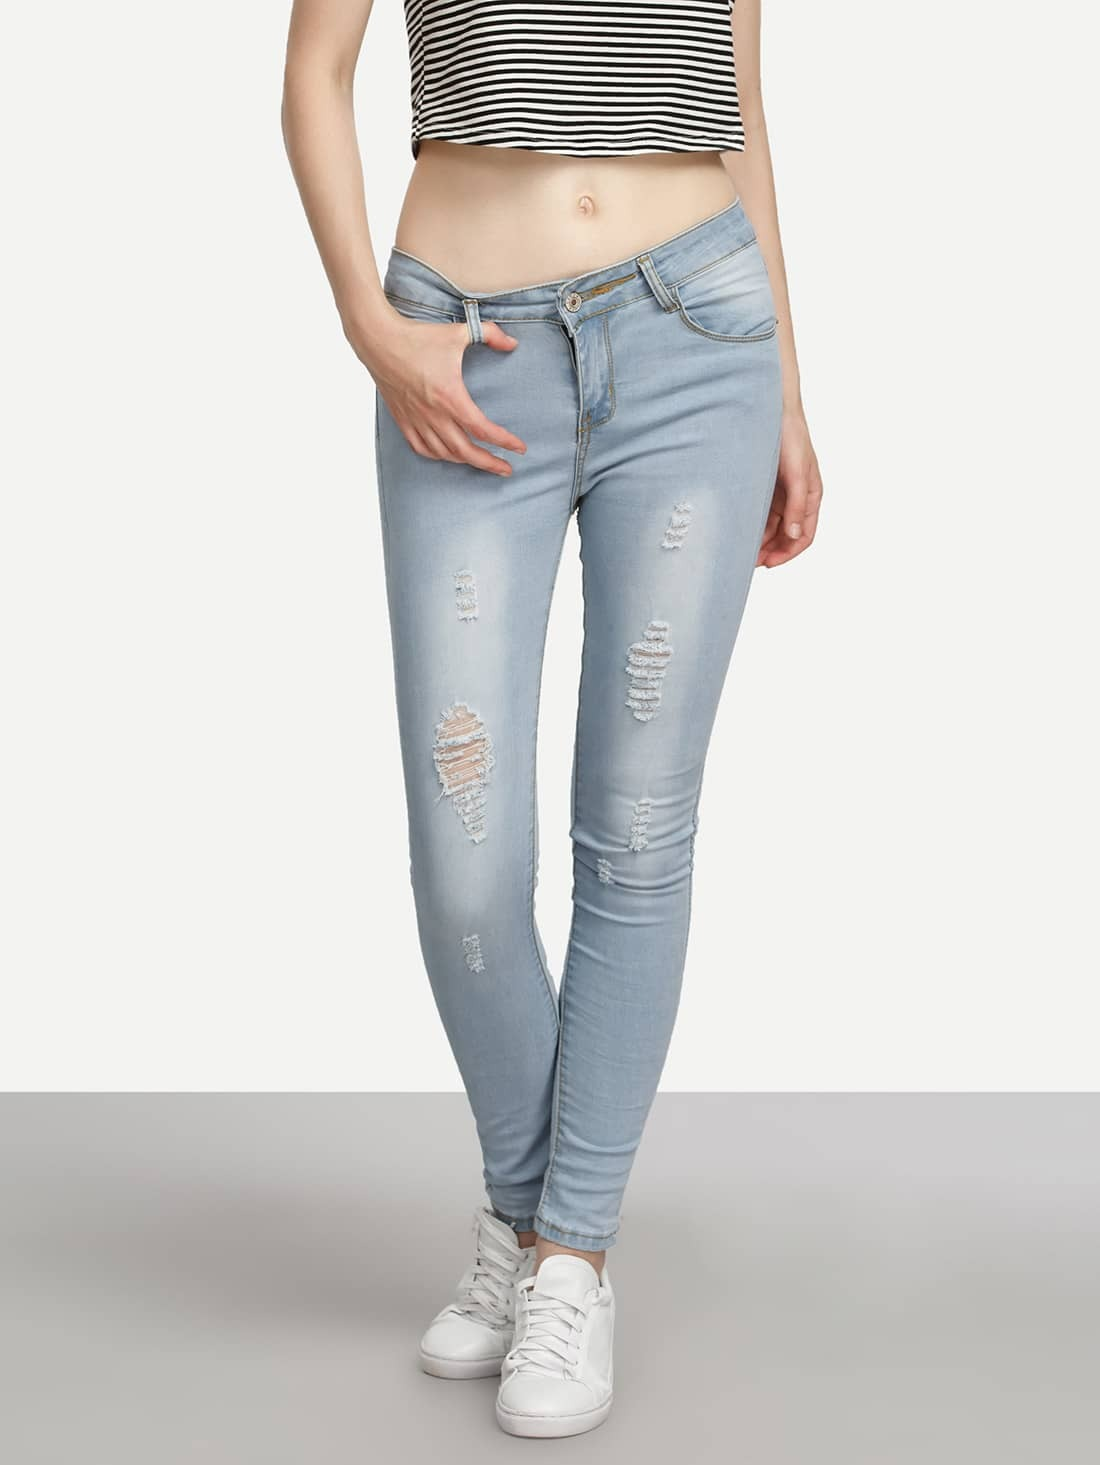 Blue Ripped Skinny Jeans hot 2017 blue ripped jeans men with holes cowboy super skinny famous designer brand slim fit destroyed torn jean pants for male